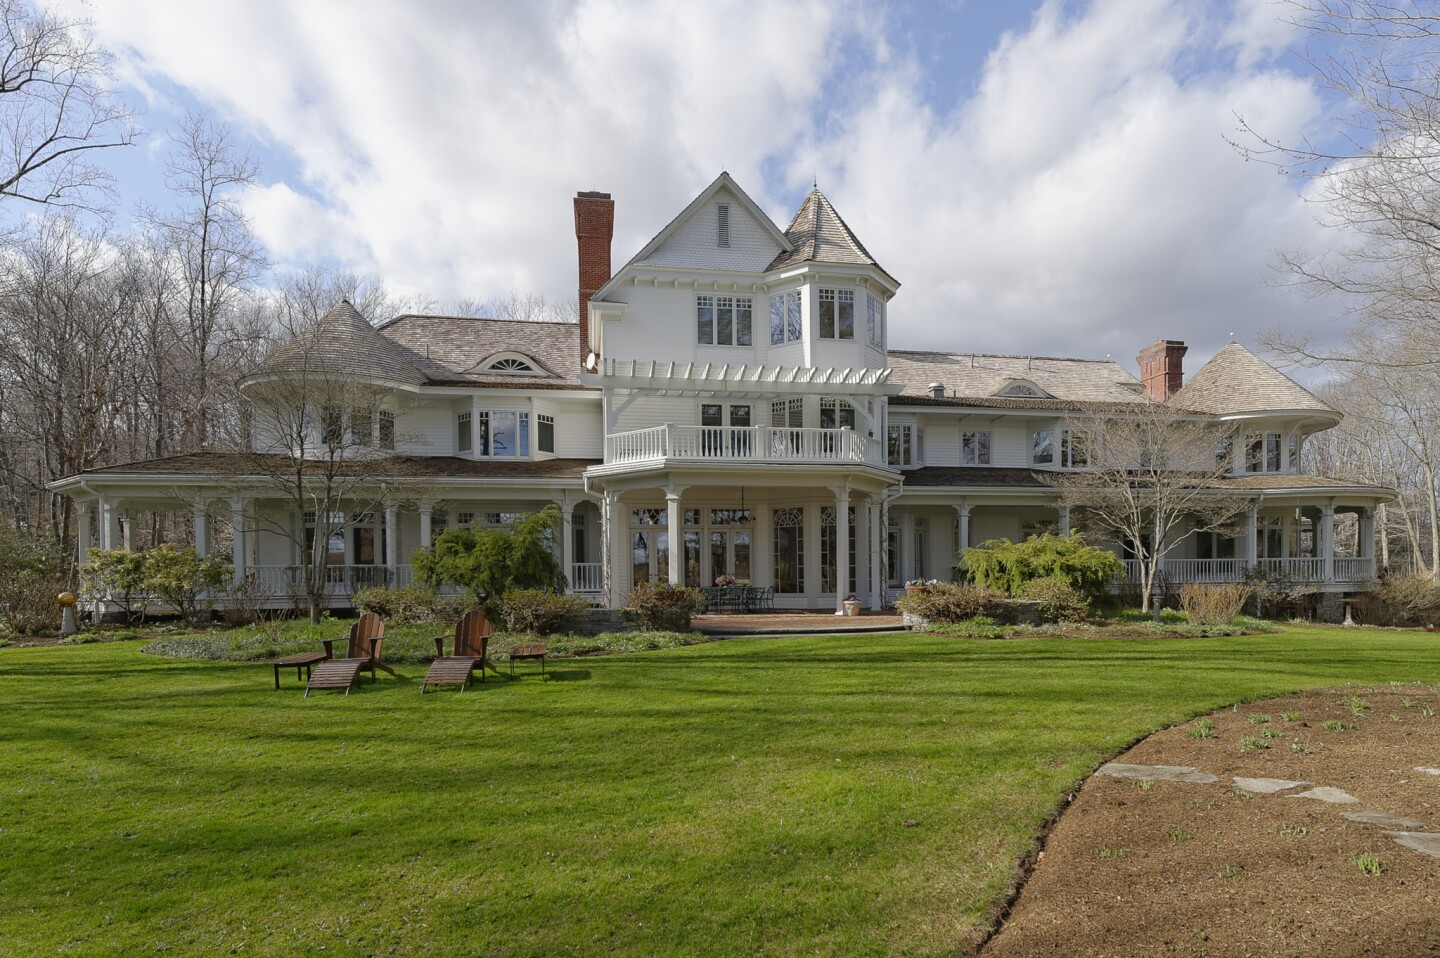 Director Ron Howard has put his 32-acre estate and farm, which straddles Greenwich, Conn., and Westchester, N.Y., up for sale at $27.5 million.